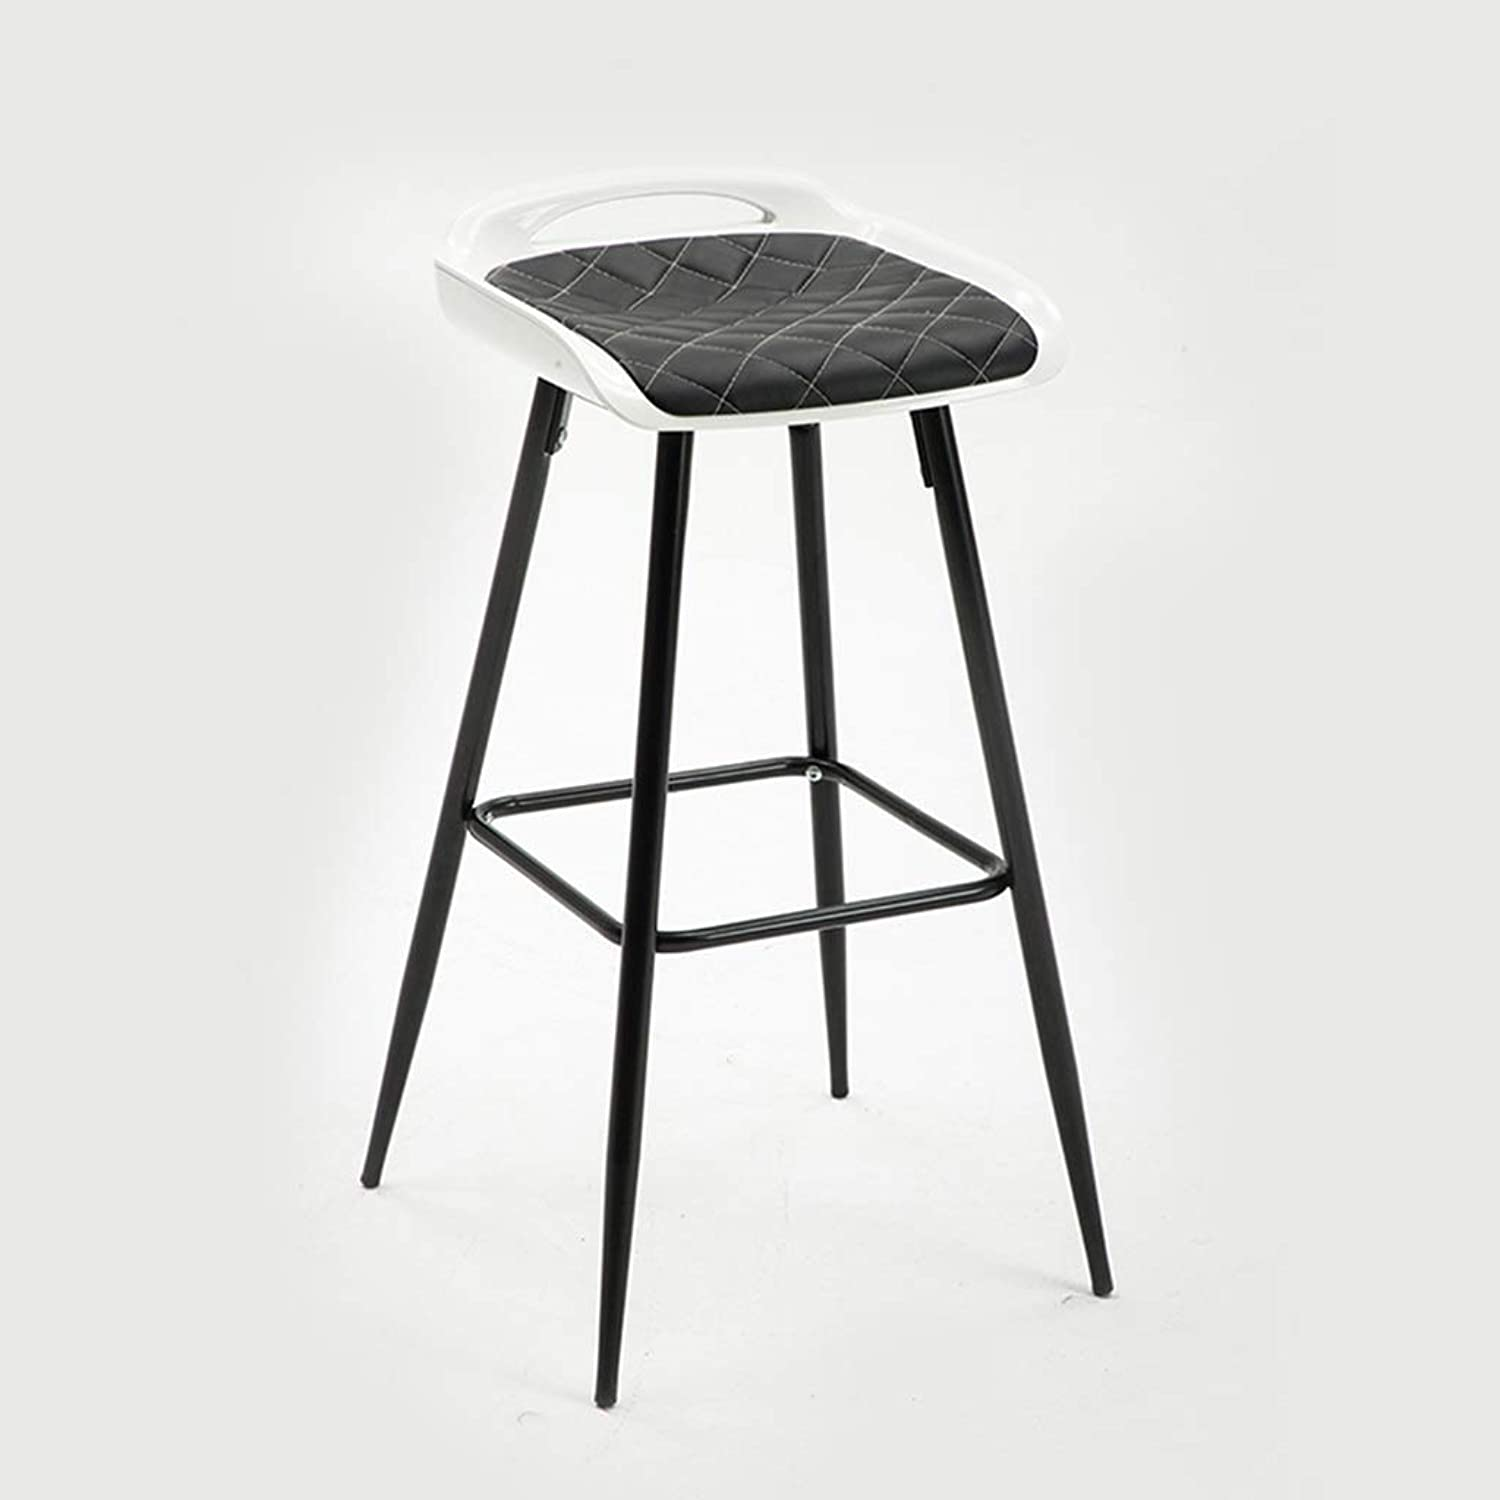 Iron Bar Chair, Restaurant Hotel Counter Bar Stool Metal Non-Slip with Backrest Bar Stool Kitchen Dining Table High Stool Height 75CM (color   Black)